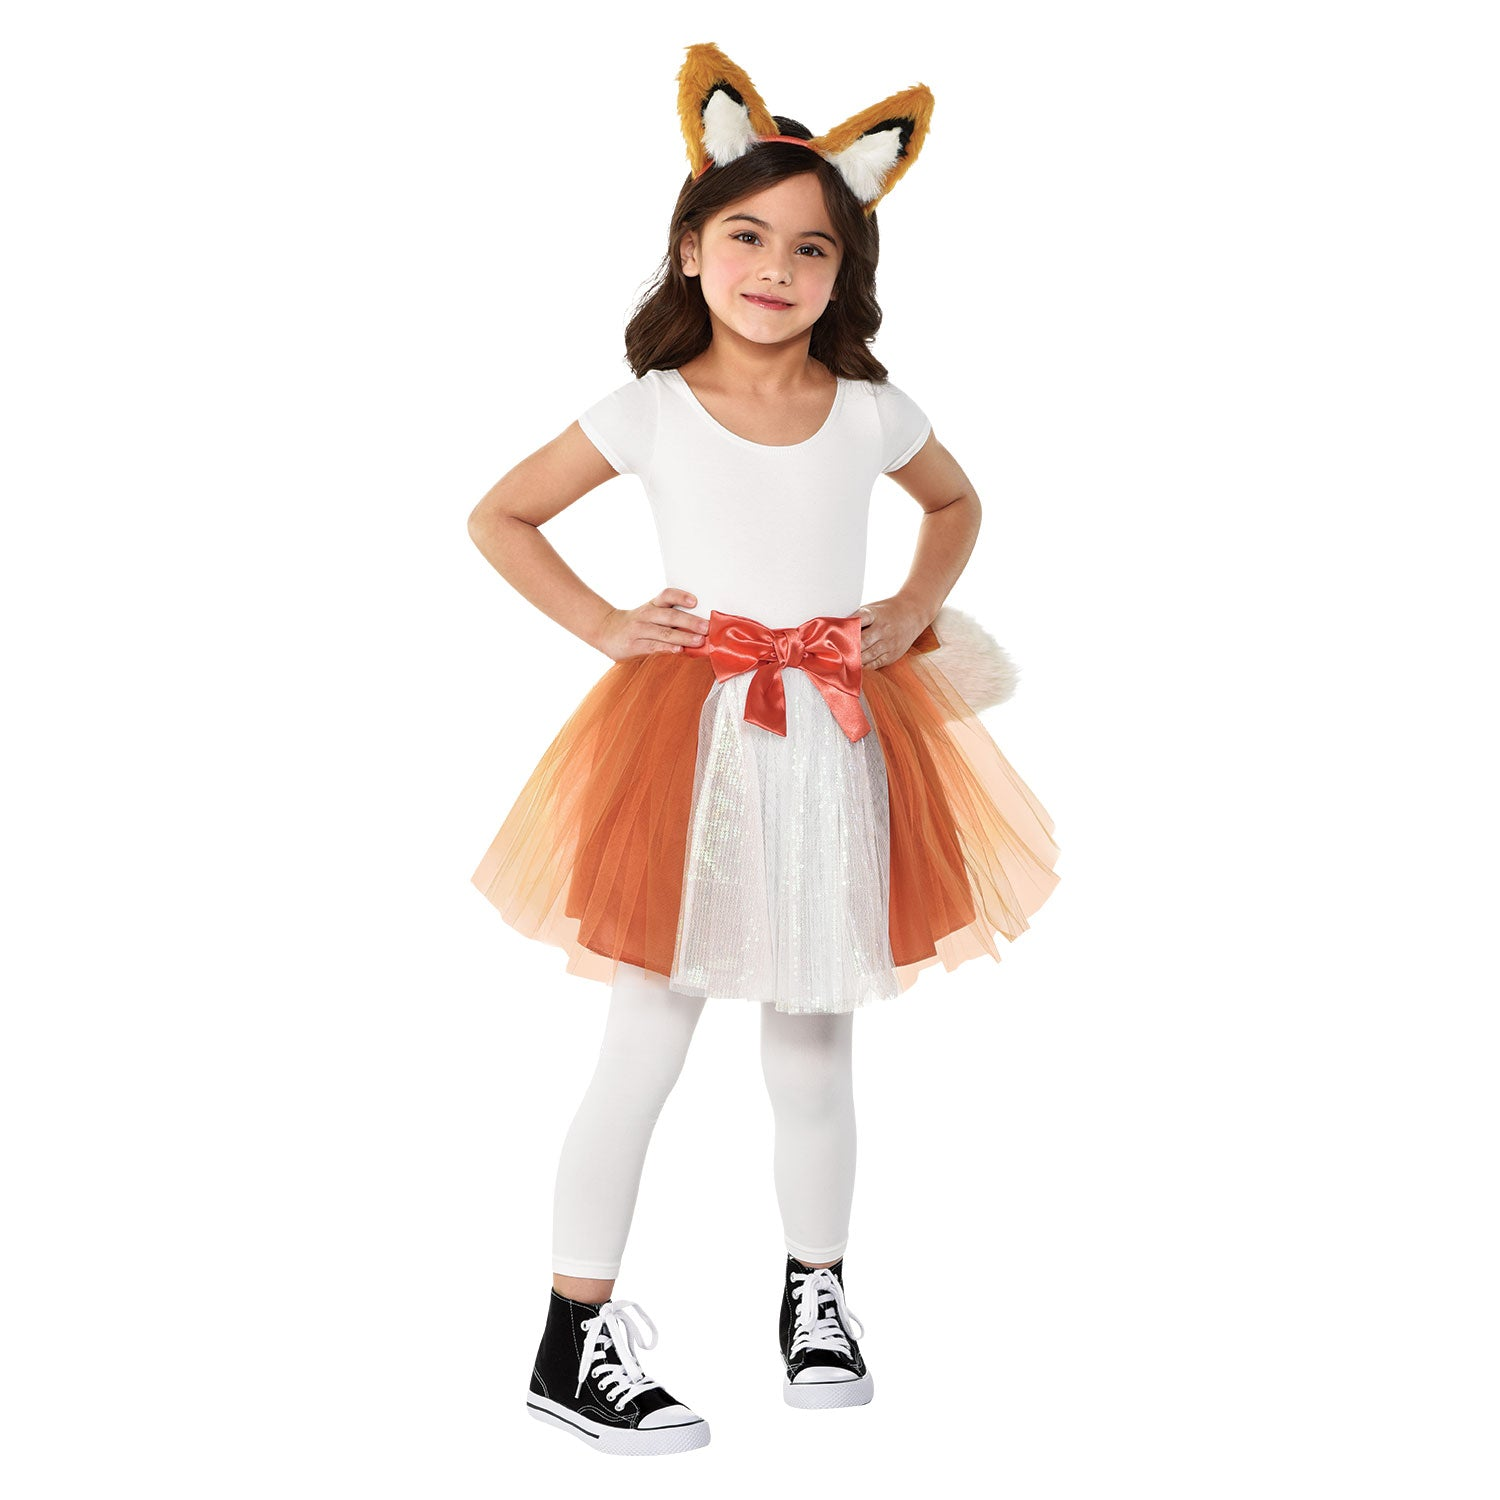 Girl in a fox outfit with a brown tutu and furry ear headband